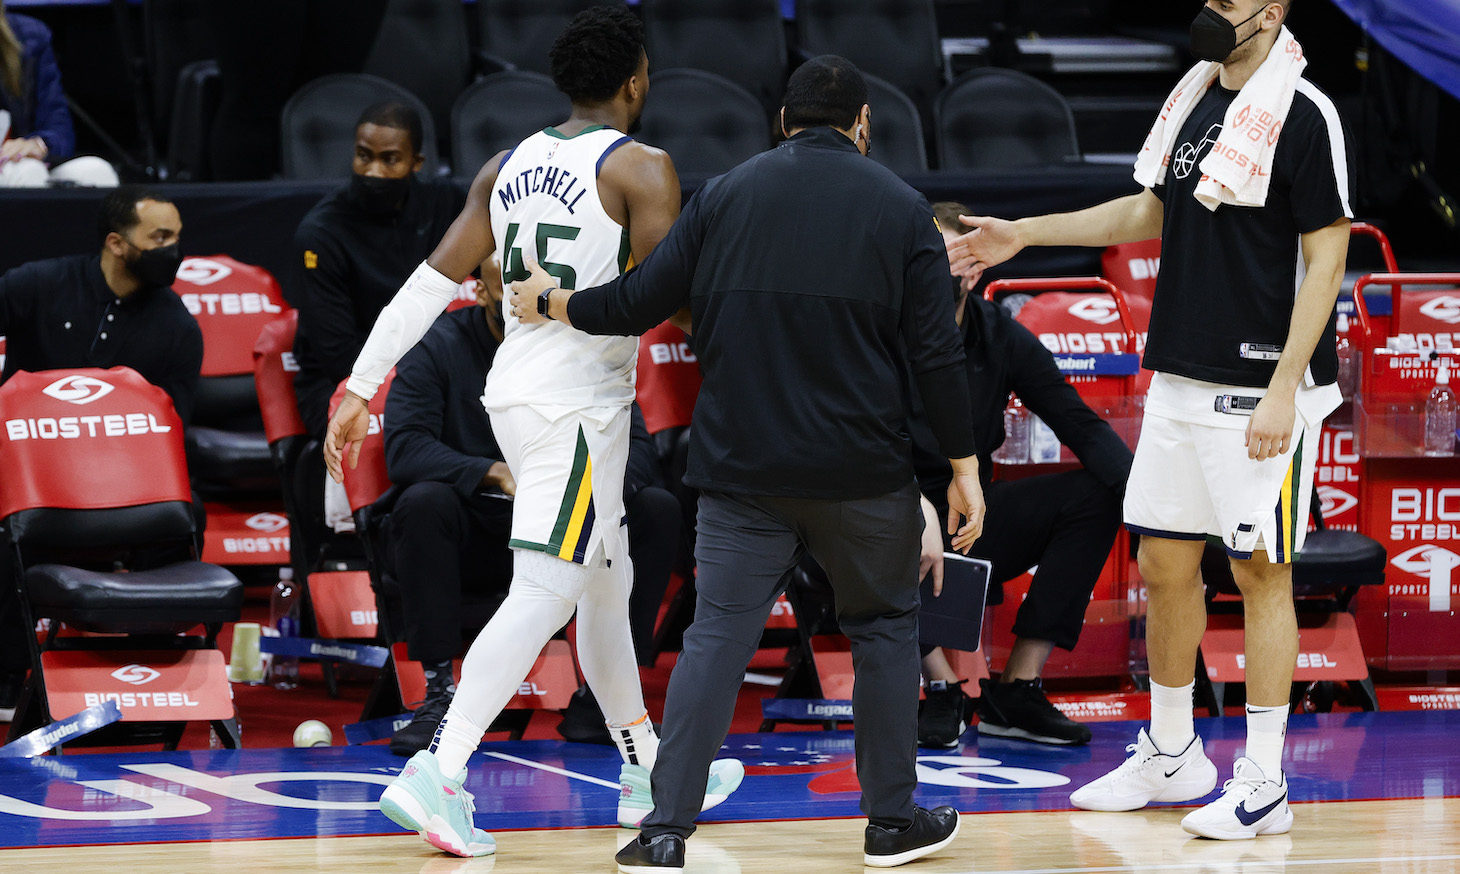 PHILADELPHIA, PENNSYLVANIA - MARCH 03: Donovan Mitchell #45 of the Utah Jazz is escorted off the court after being ejected during overtime against the Philadelphia 76ers at Wells Fargo Center on March 03, 2021 in Philadelphia, Pennsylvania. NOTE TO USER: User expressly acknowledges and agrees that, by downloading and or using this photograph, User is consenting to the terms and conditions of the Getty Images License Agreement. (Photo by Tim Nwachukwu/Getty Images)